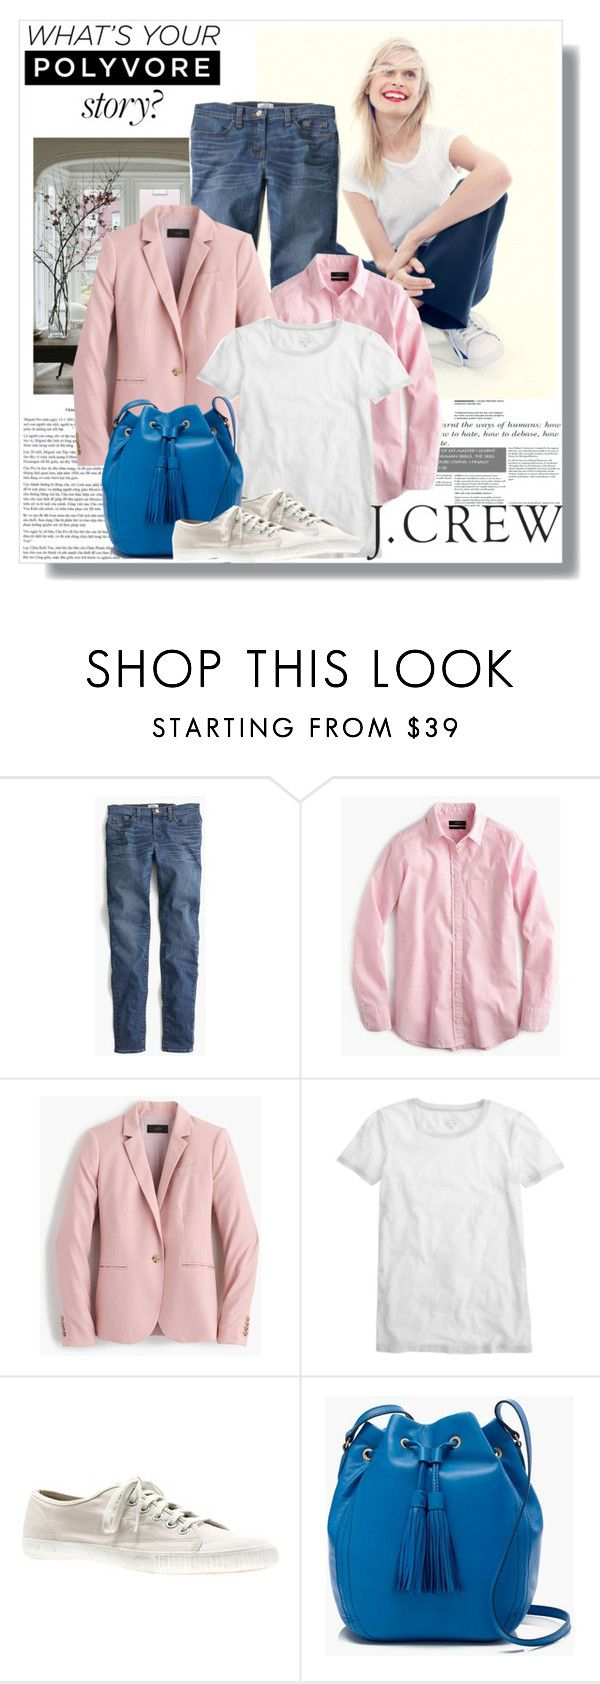 """Spring with J.Crew"" by lidia-solymosi ❤ liked on Polyvore featuring J.Crew, RetroSuperFuture, women's clothing, women, female, woman, misses, juniors, jcrew and sping"